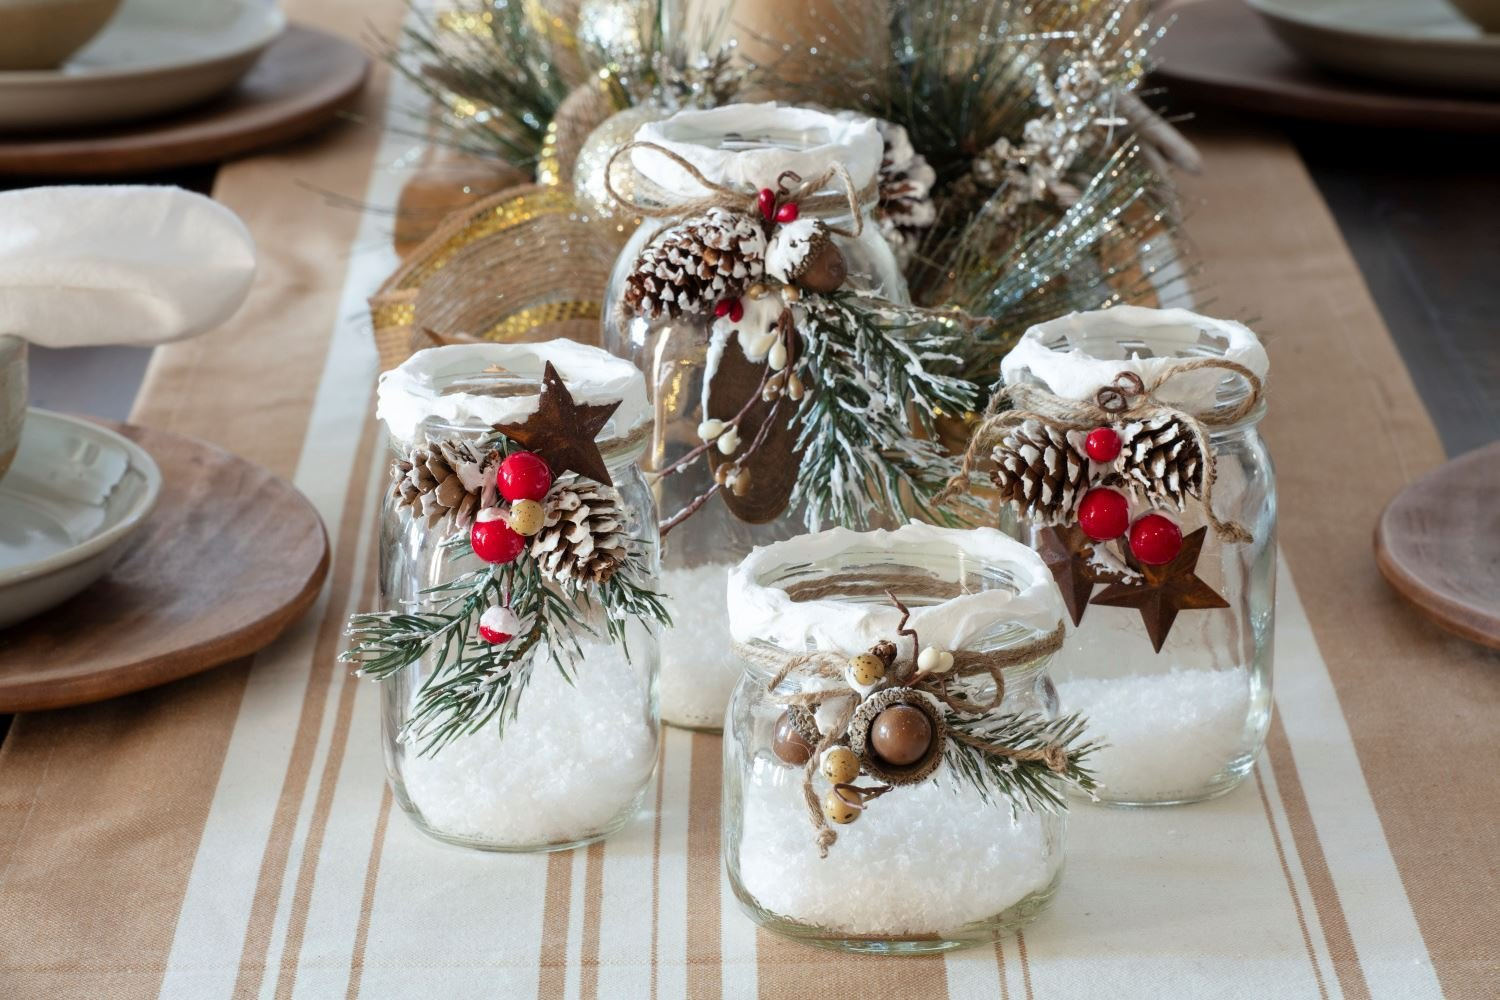 featured image of Budget-Friendly Holiday Decor Ideas that Make a Statement article